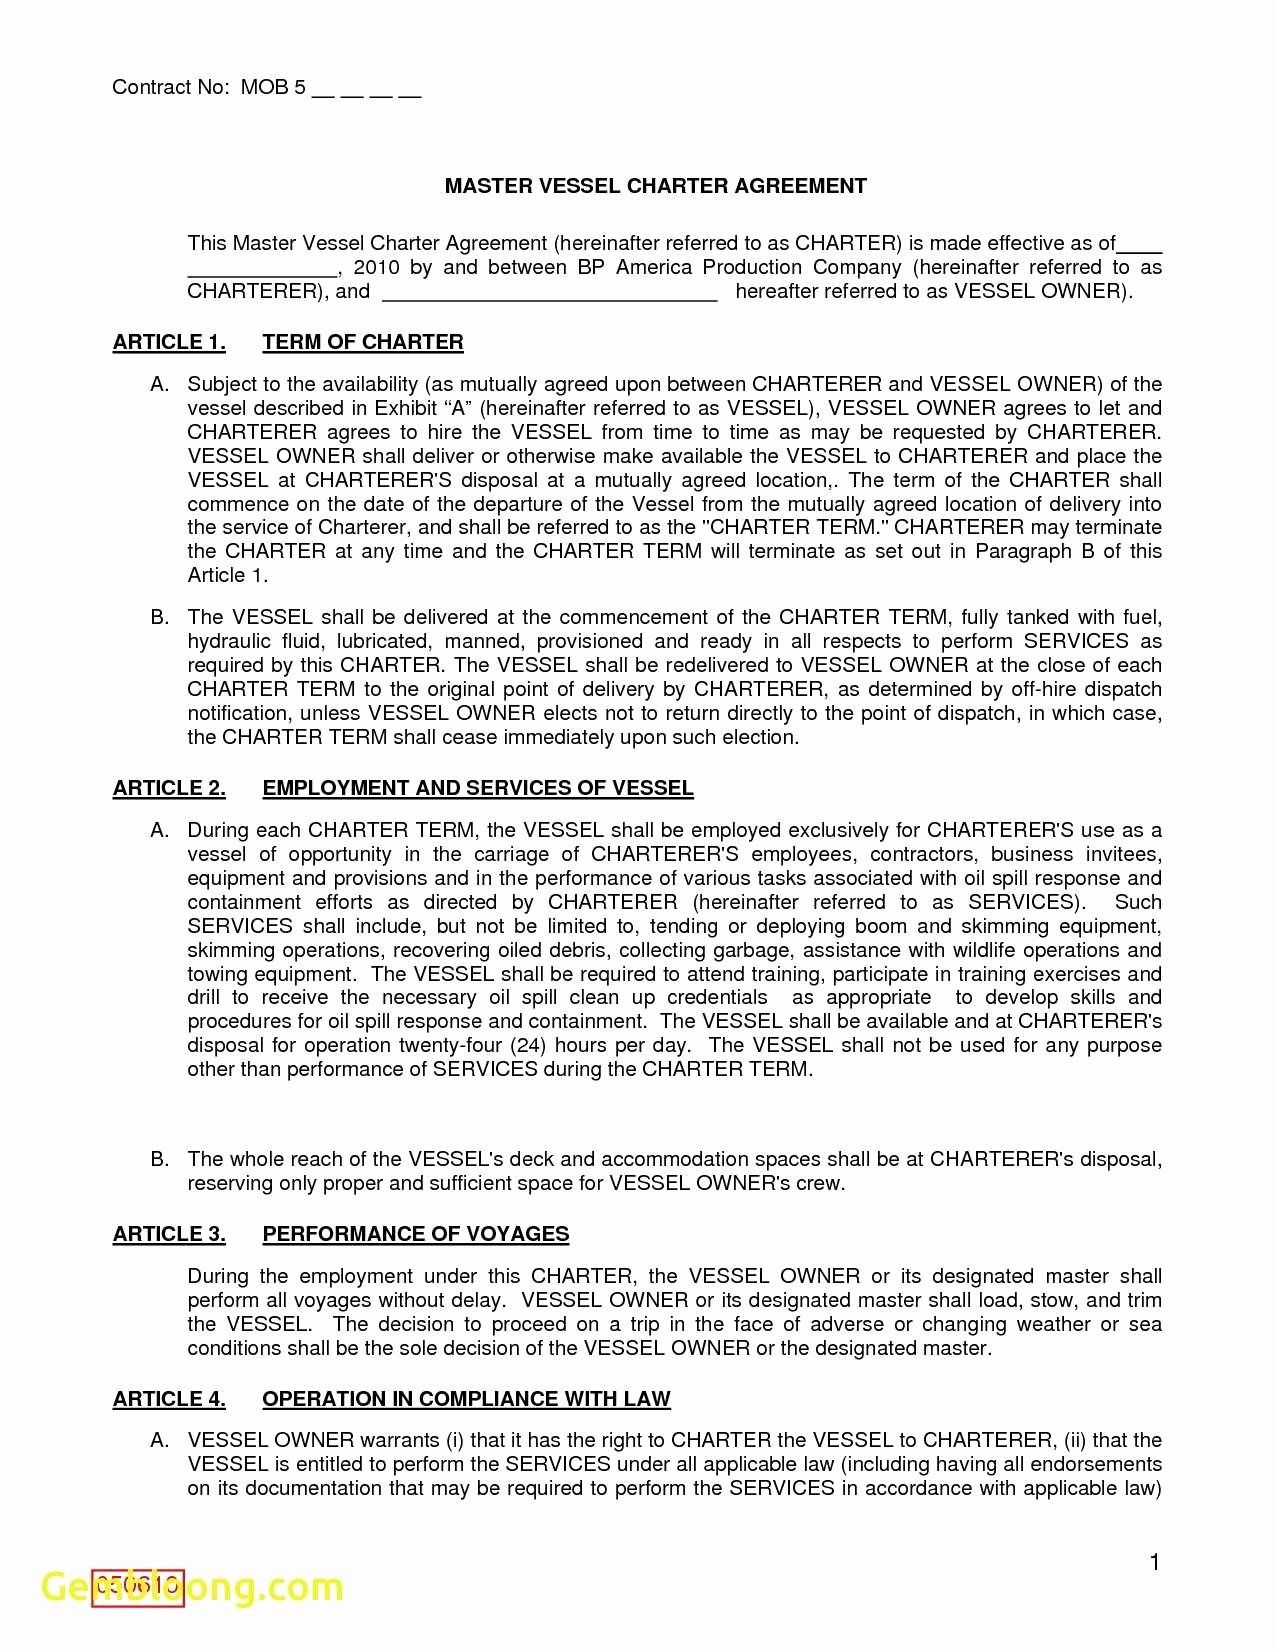 Master Service Agreement Template Inspirational Master Service